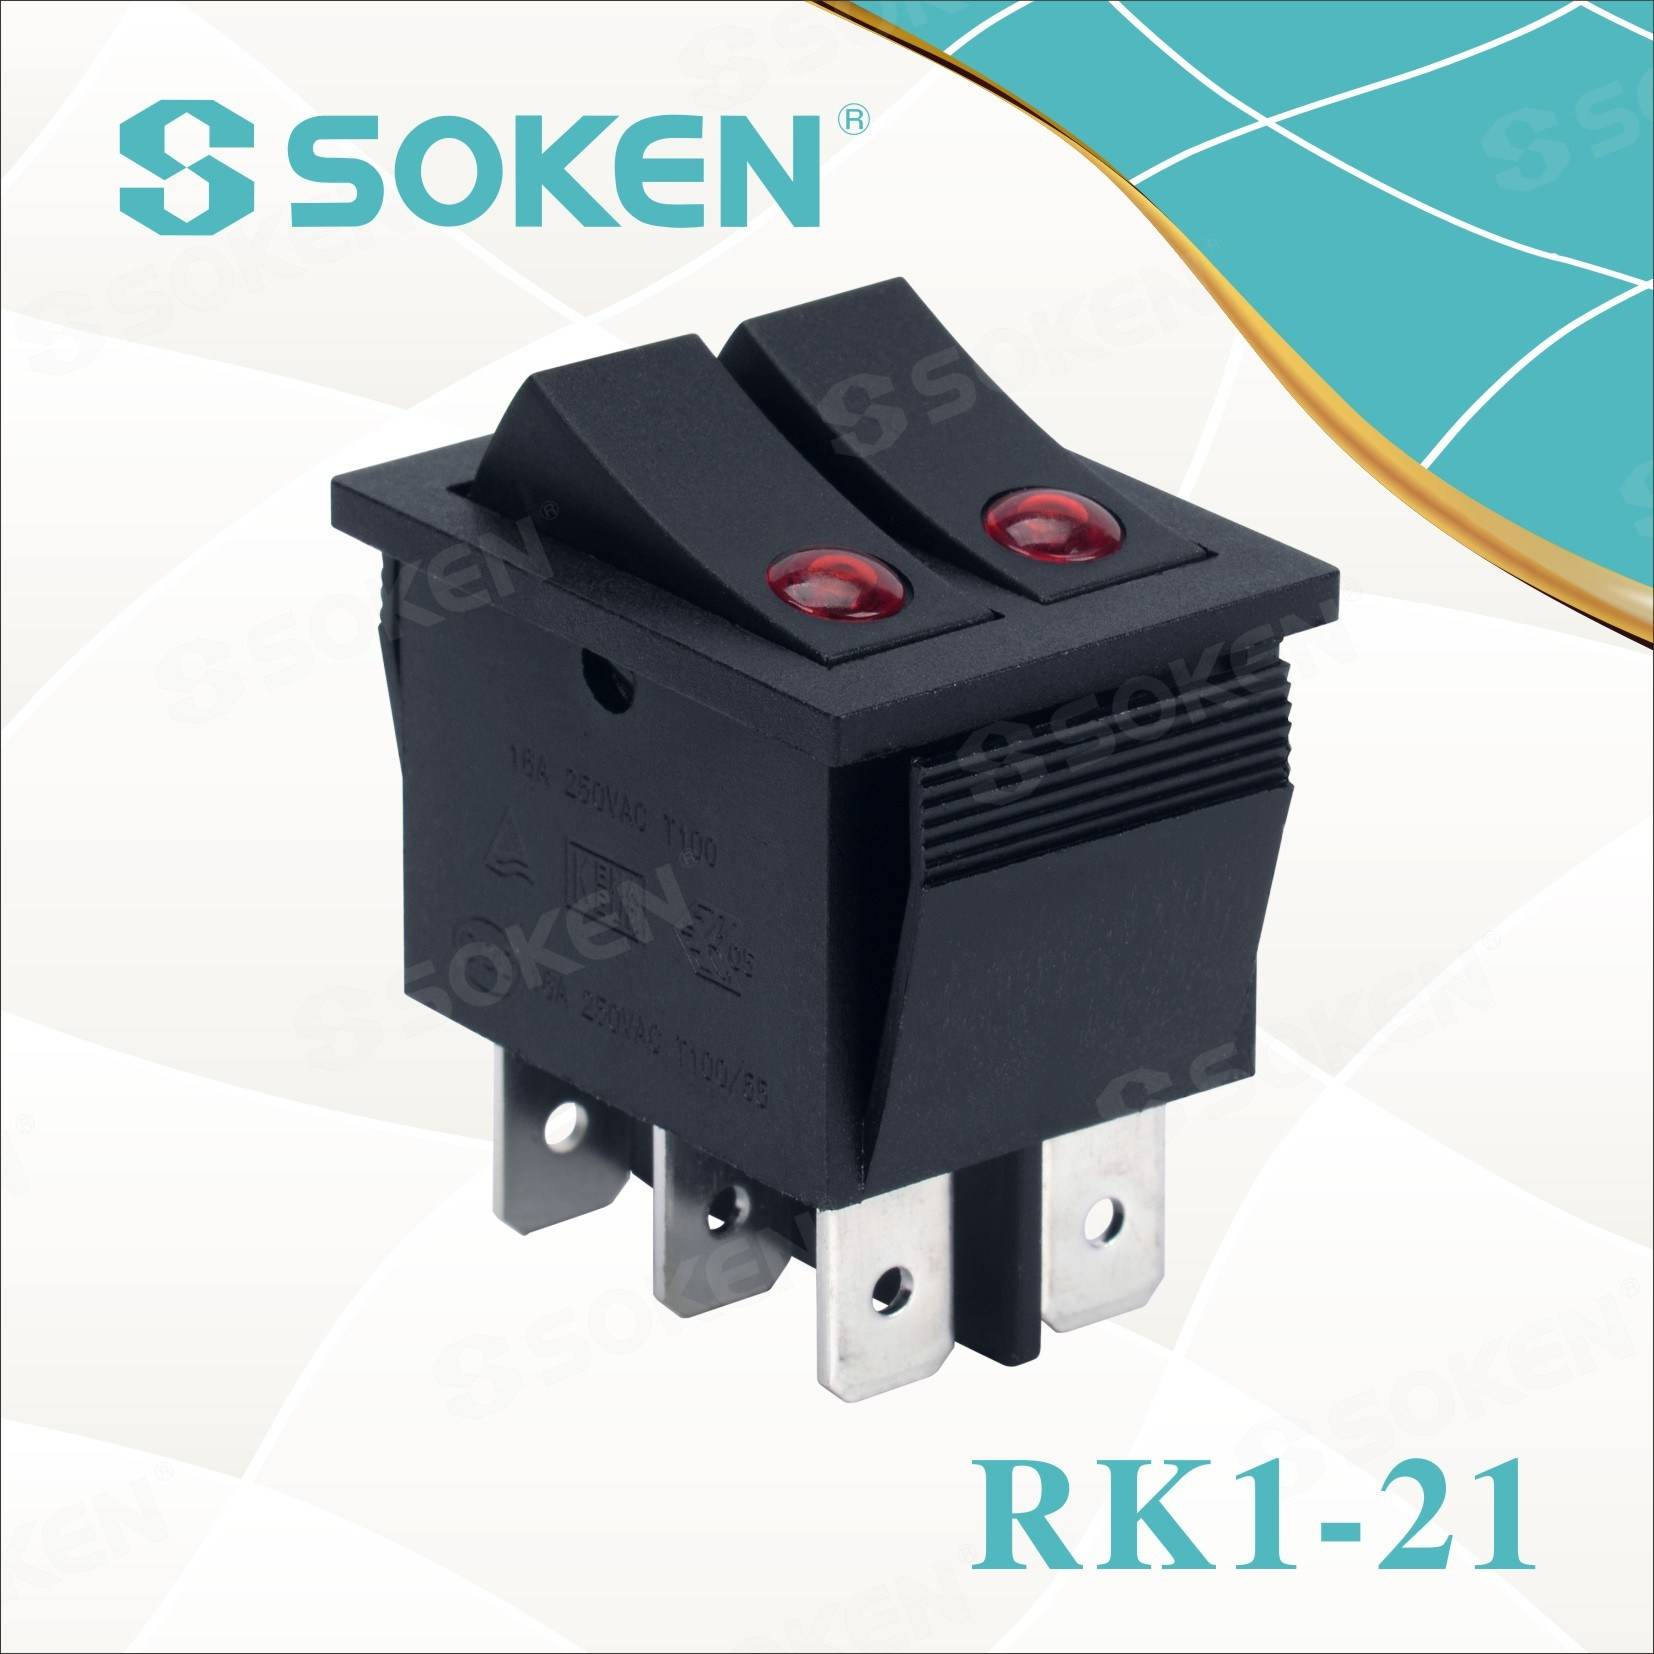 Soken Rk1-21 Lens on off Illuminated Double Rocker Switch